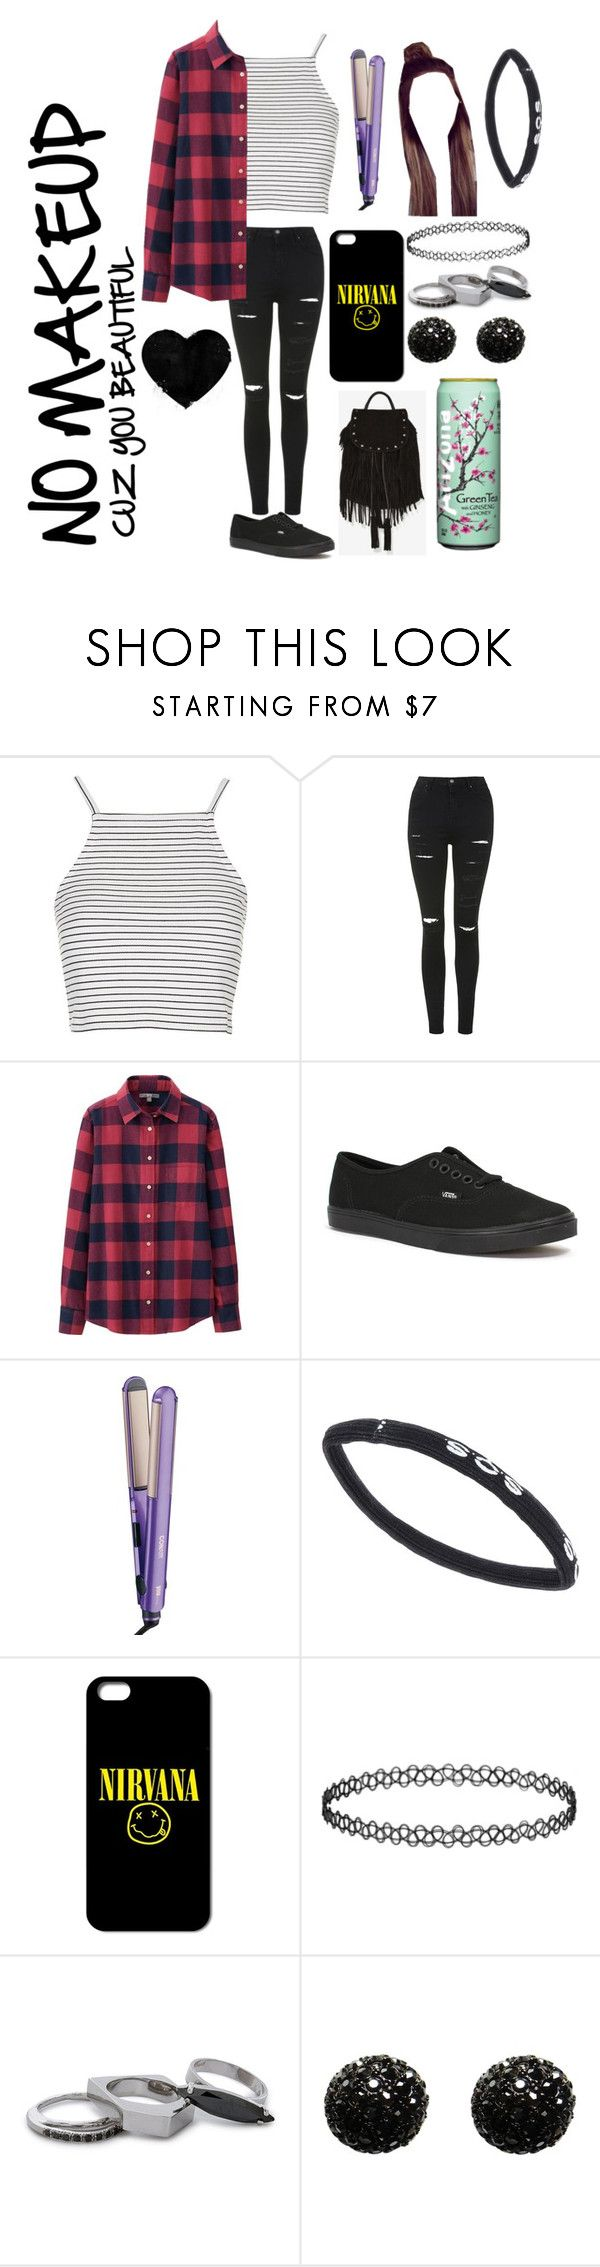 """""""we're all mad here.."""" by i-found-wonderland ❤ liked on Polyvore featuring Topshop, Uniqlo, Vans, Conair, S.O.S By Orza Studio, Iosselliani, Kenneth Jay Lane and Maison Scotch"""